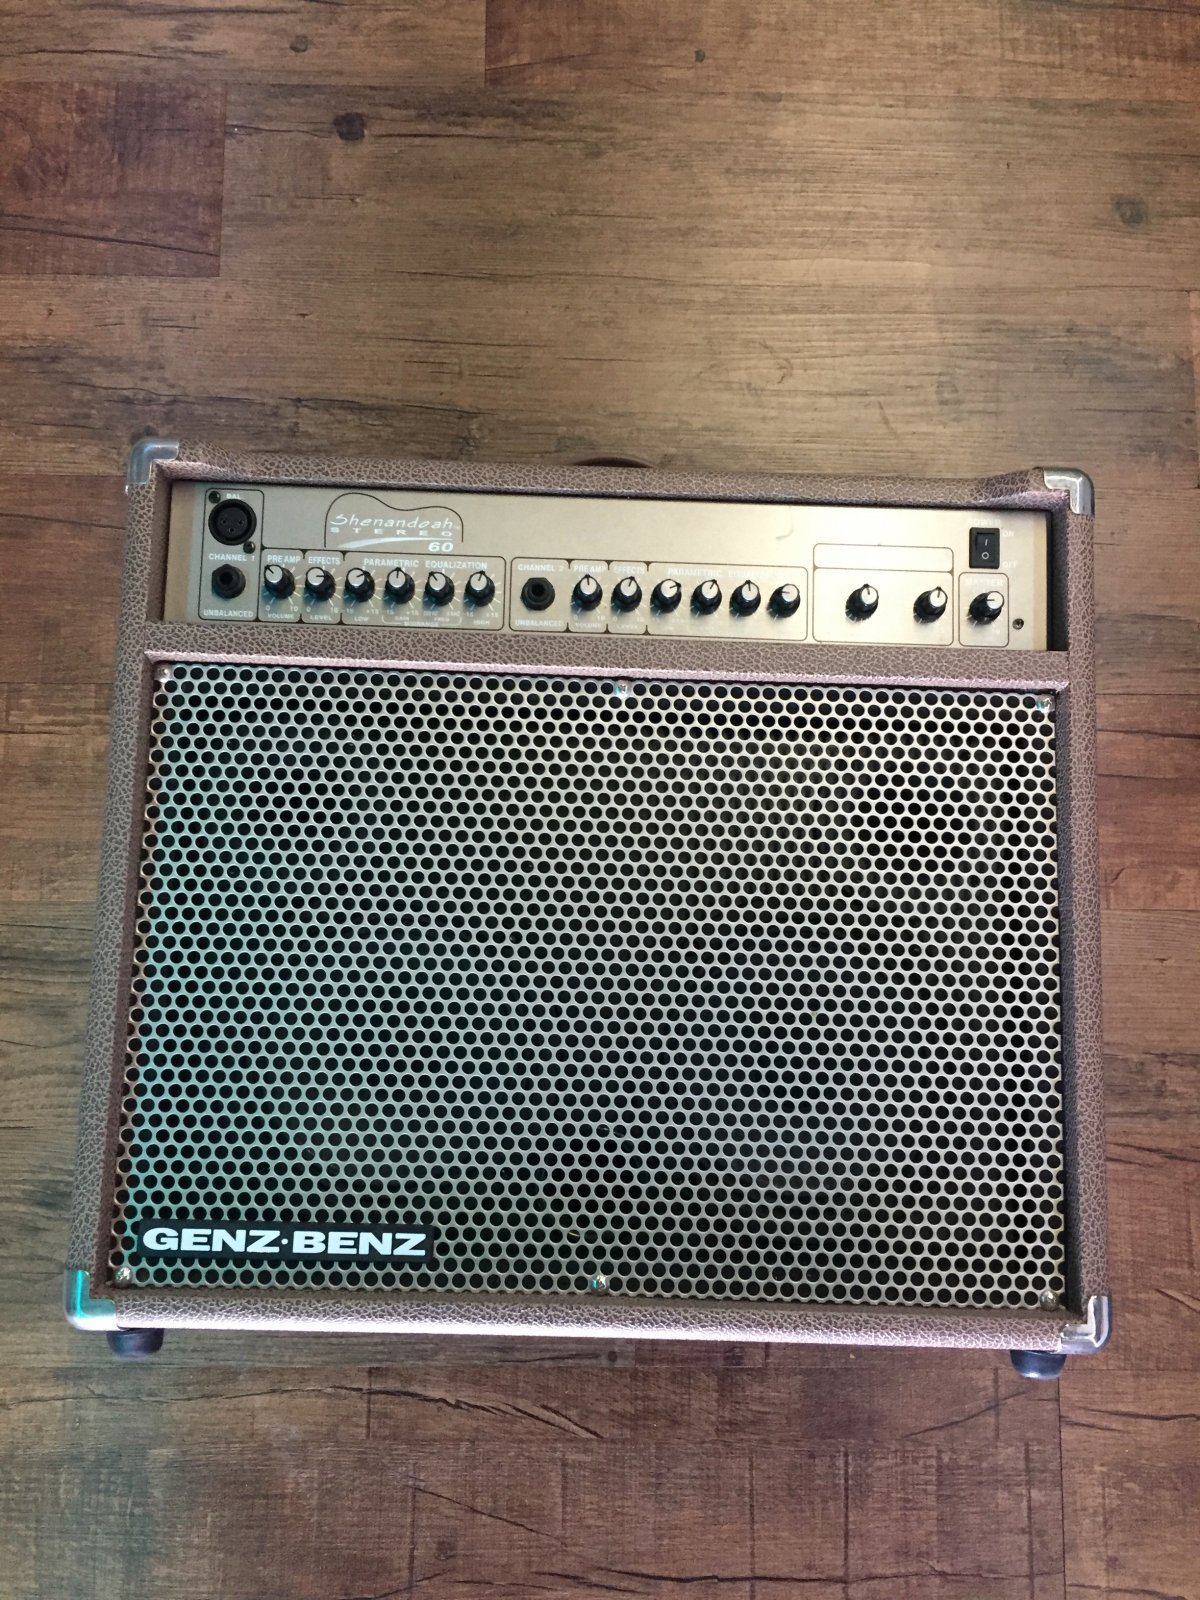 GENZ BENZ SHENANDOAH STEREO 60 ACOUSTIC AMP 60W W/FX (USED)